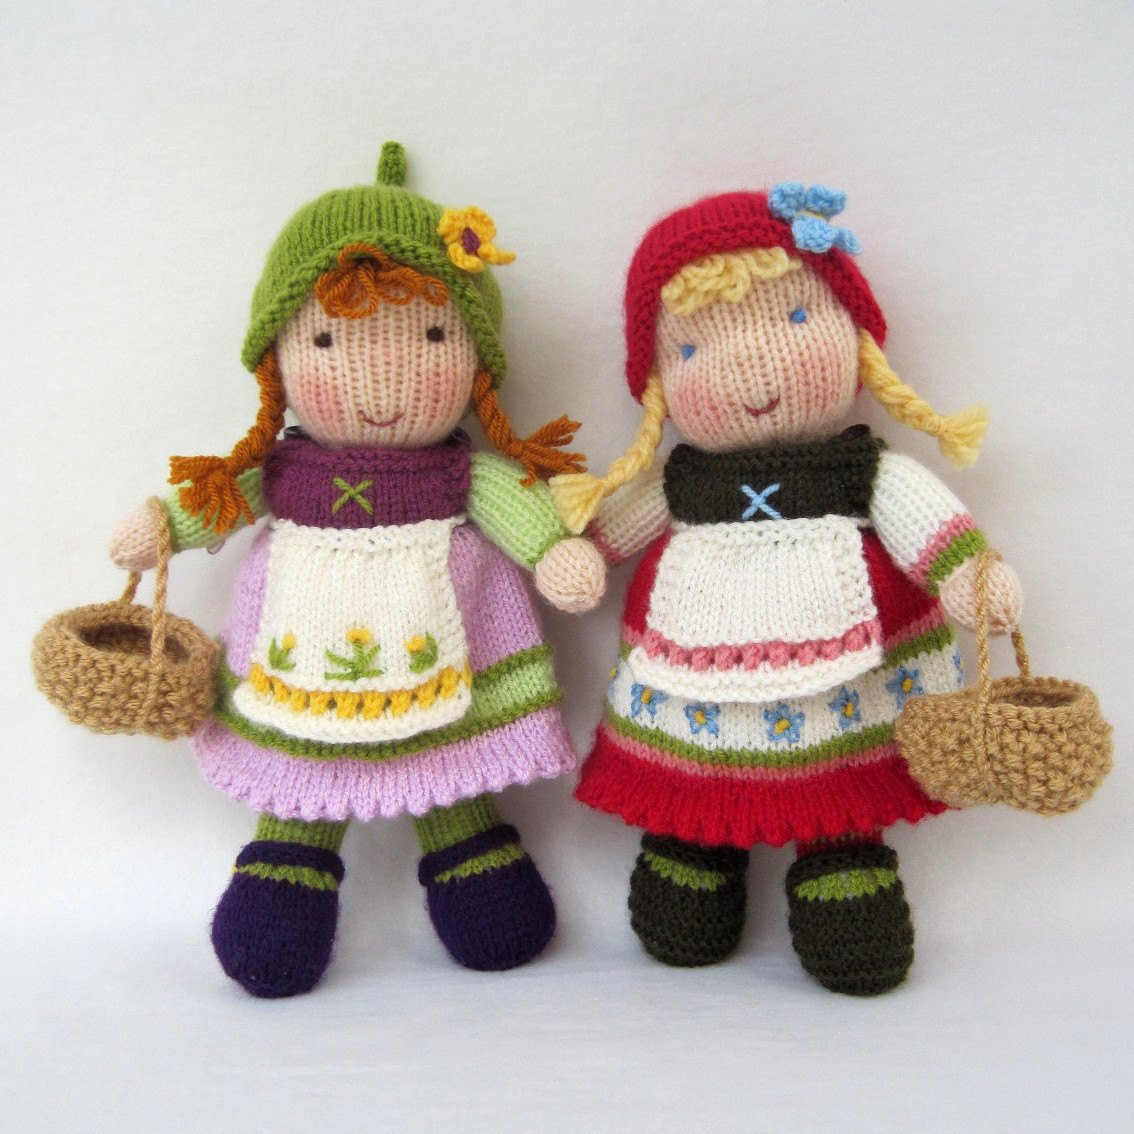 Awesome Fern and Flora Pdf Email toy Doll Knitting Pattern Knitted Doll Patterns Of Lovely 40 Models Knitted Doll Patterns